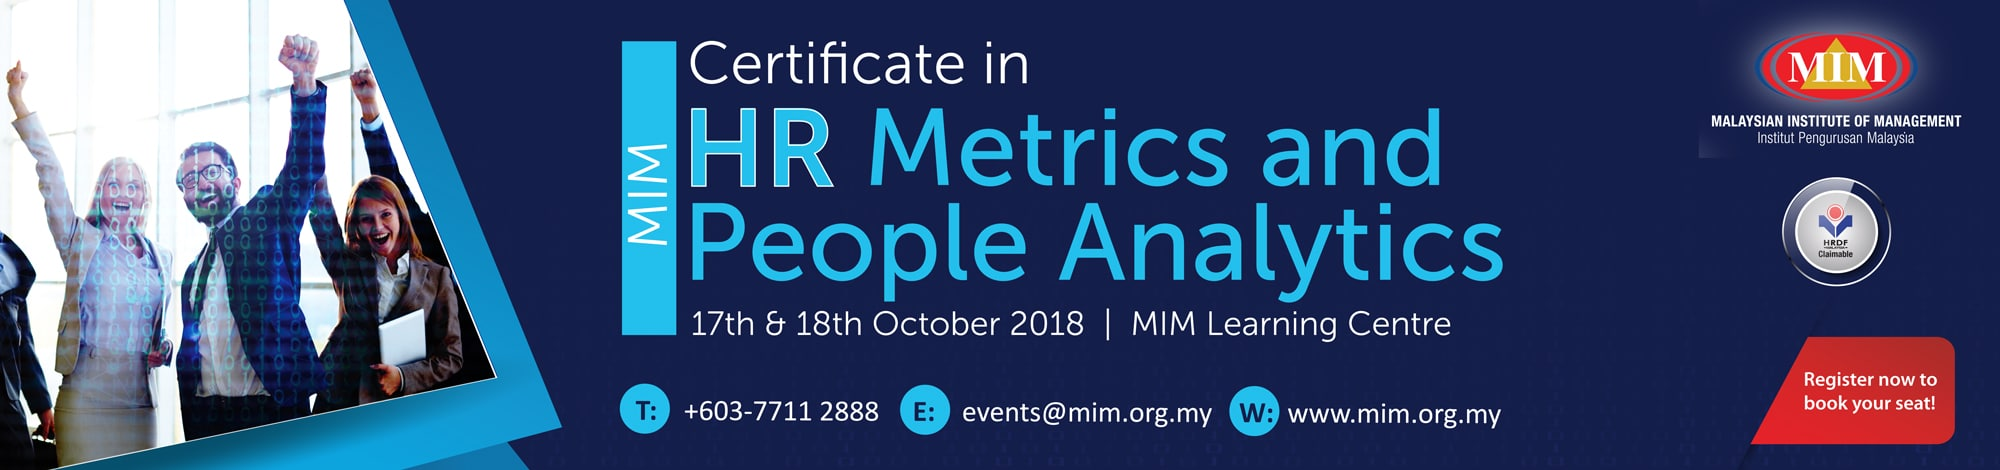 Social-meidia_Certificate-on-HR-Metrics-and-People-Analytics-5